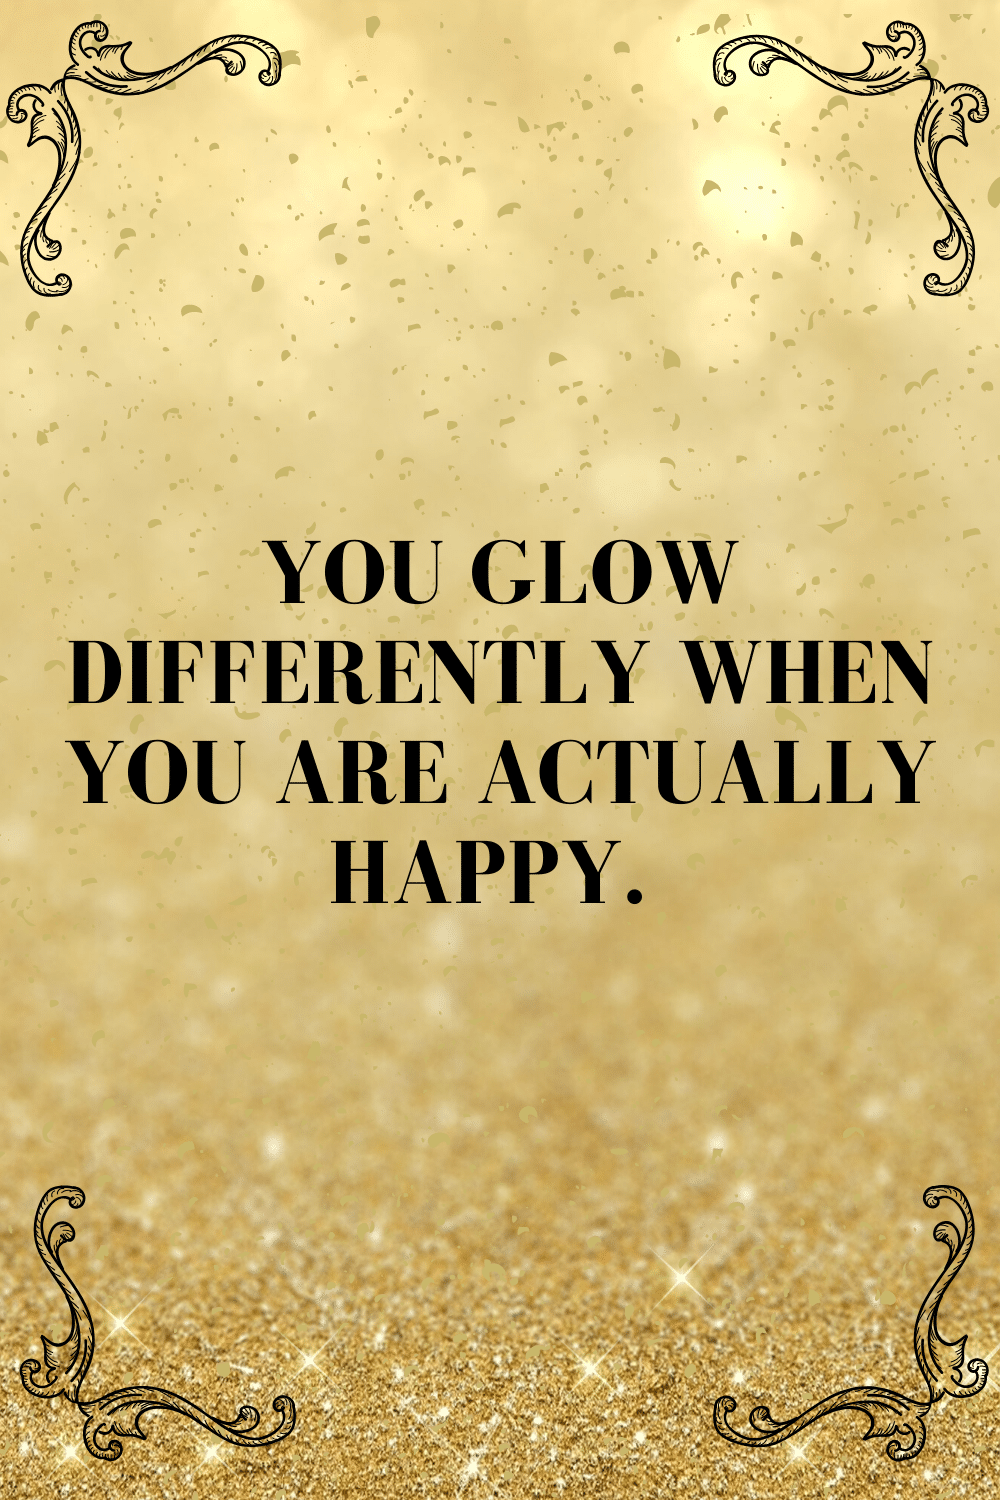 You glow differently when you are actually happy